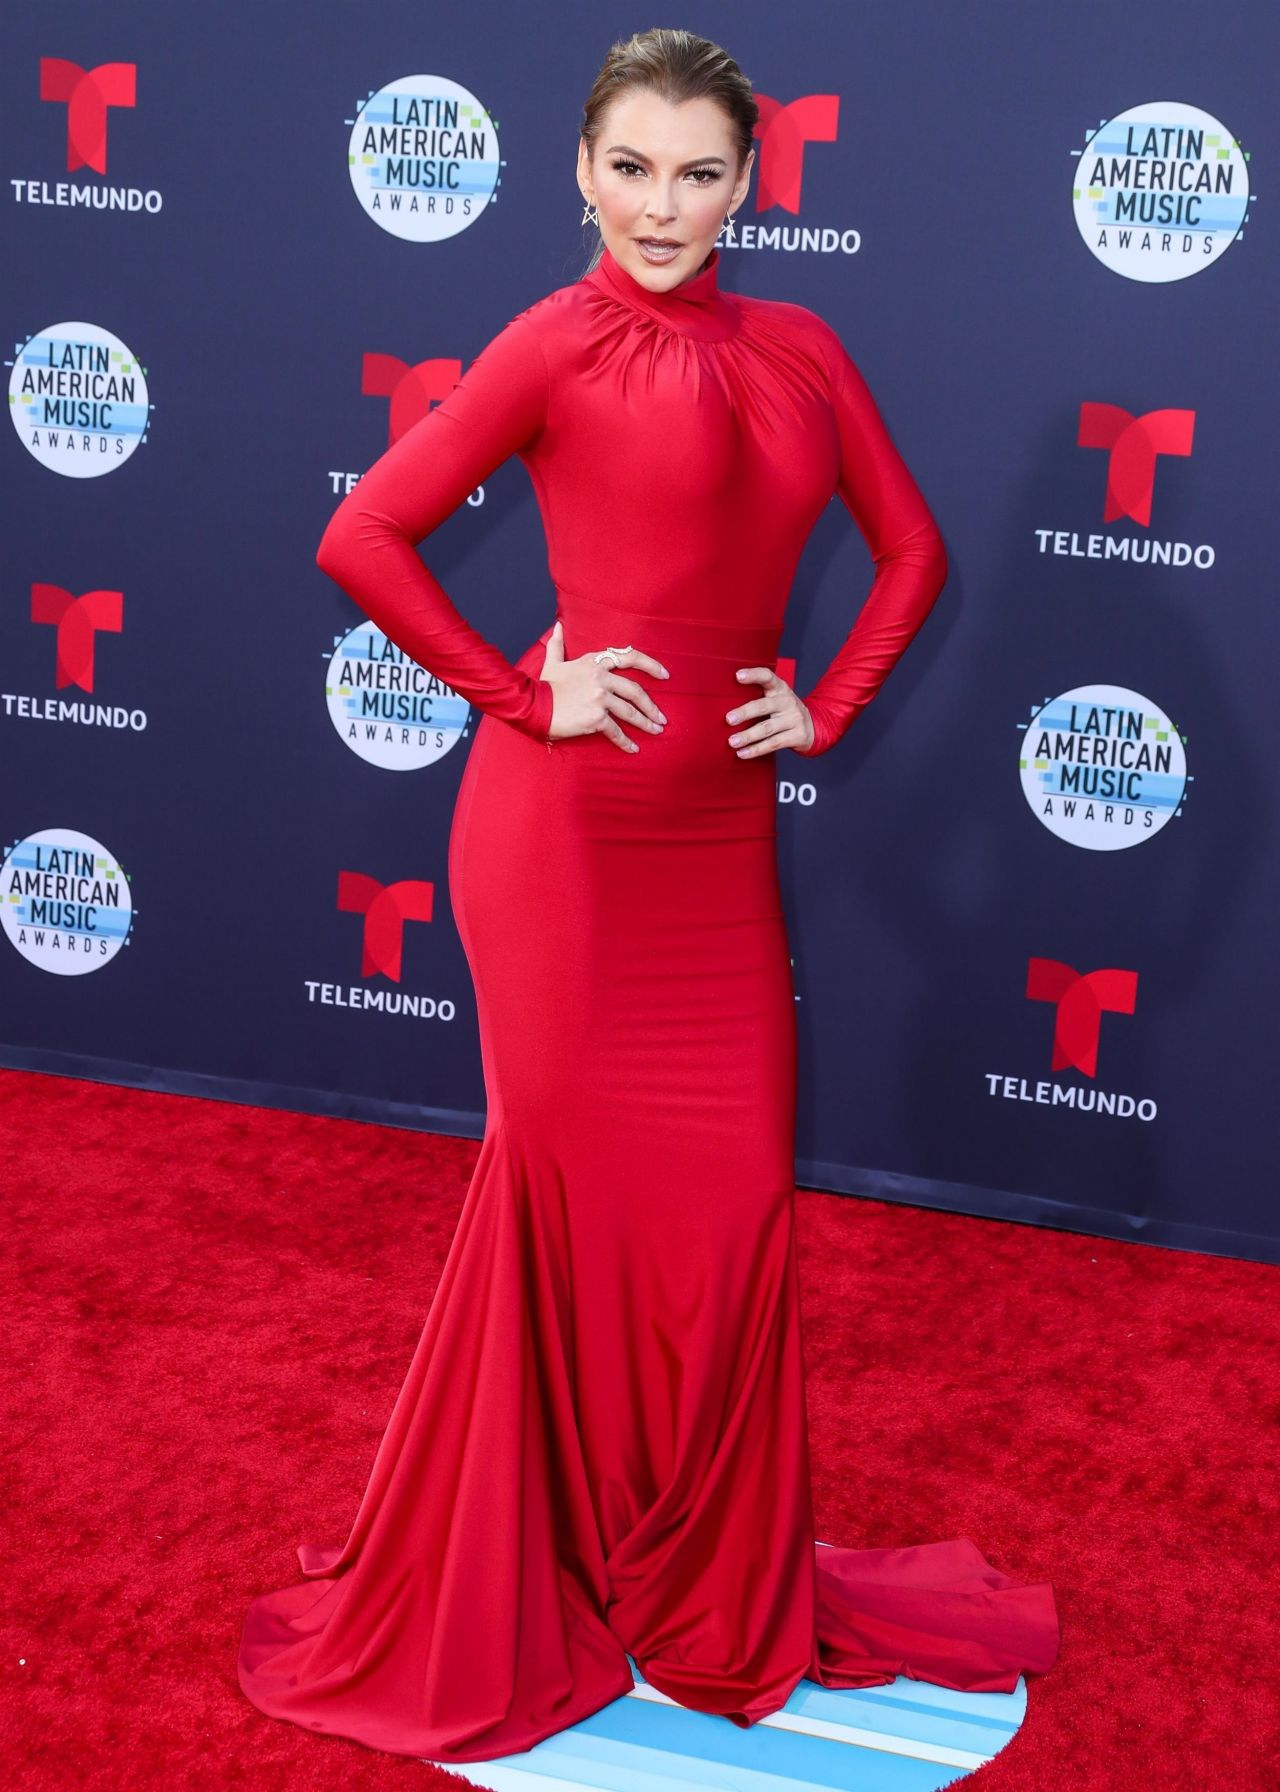 https://celebmafia.com/wp-content/uploads/2018/10/marjorie-de-sousa-2018-latin-american-music-awards-in-hollywood-0.jpg